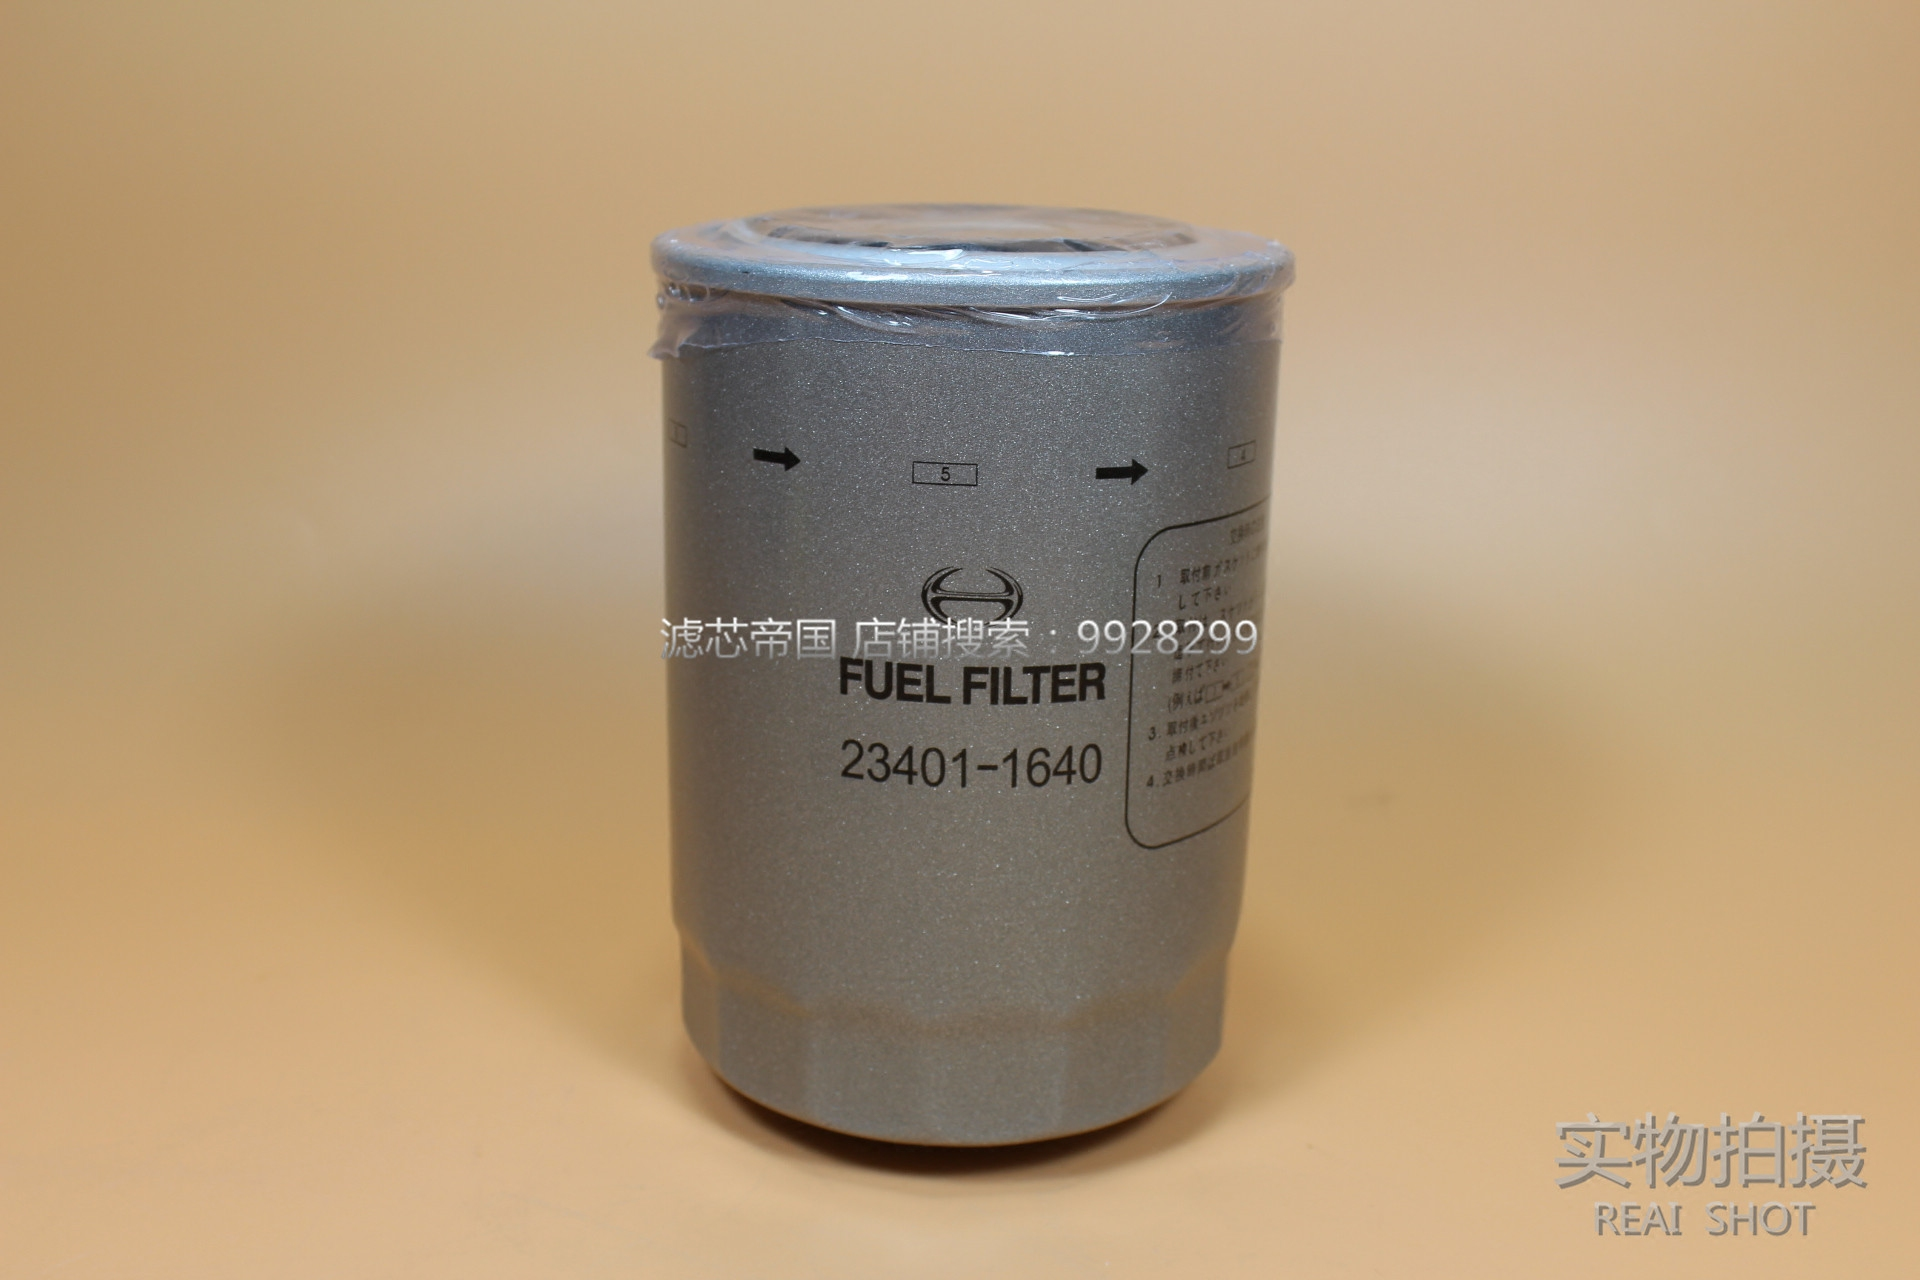 hight resolution of adapted to hino fuel filter 23401 1640 grid s2340 11640 dieseladapted to hino fuel filter 23401